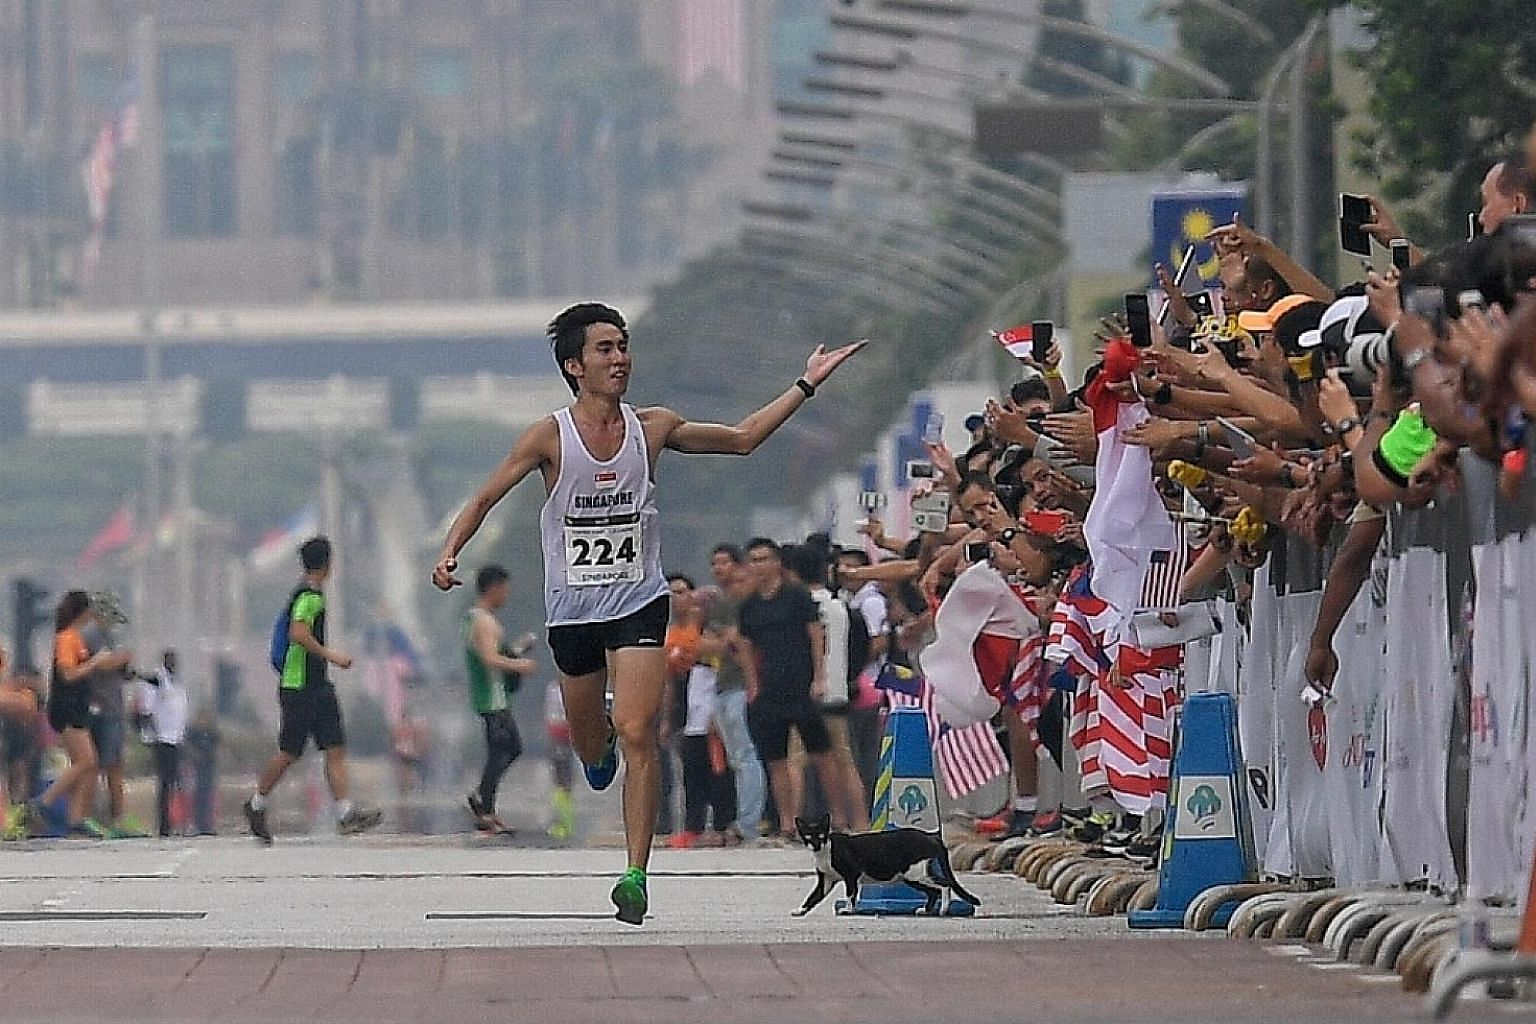 Singapore marathoner Soh Rui Yong at the finish line in Putrajaya last month, when he won his second successive gold medal at the SEA Games. He is protesting against the rule which requires him to give his association 20 per cent of the $10,000 award